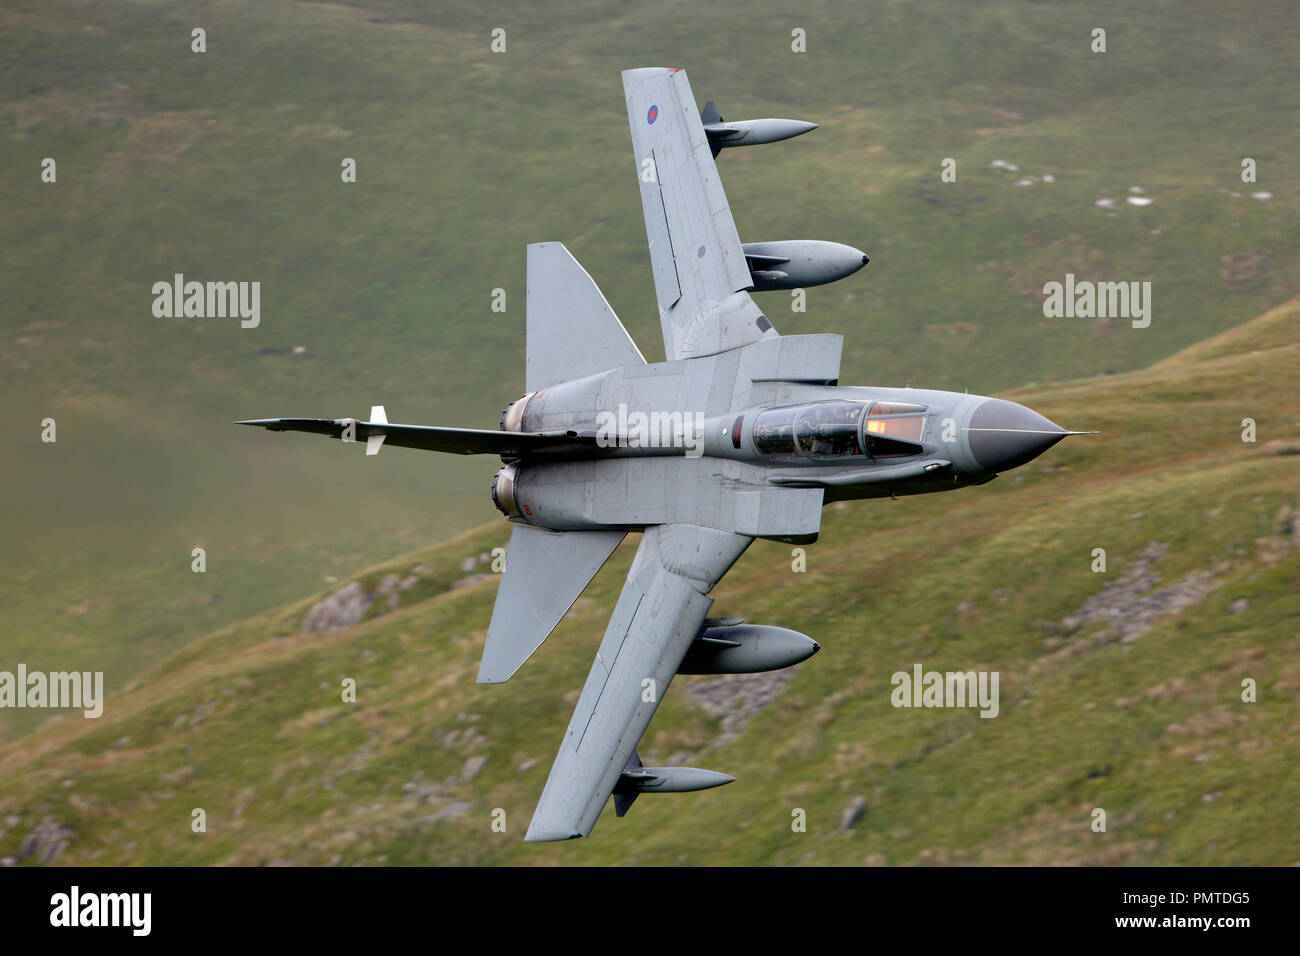 Royal Air Force Panavia Tornado GR4 flying low level in the Mach Loop military low level training area LFA7 Snowdonia, Wales Stock Photo